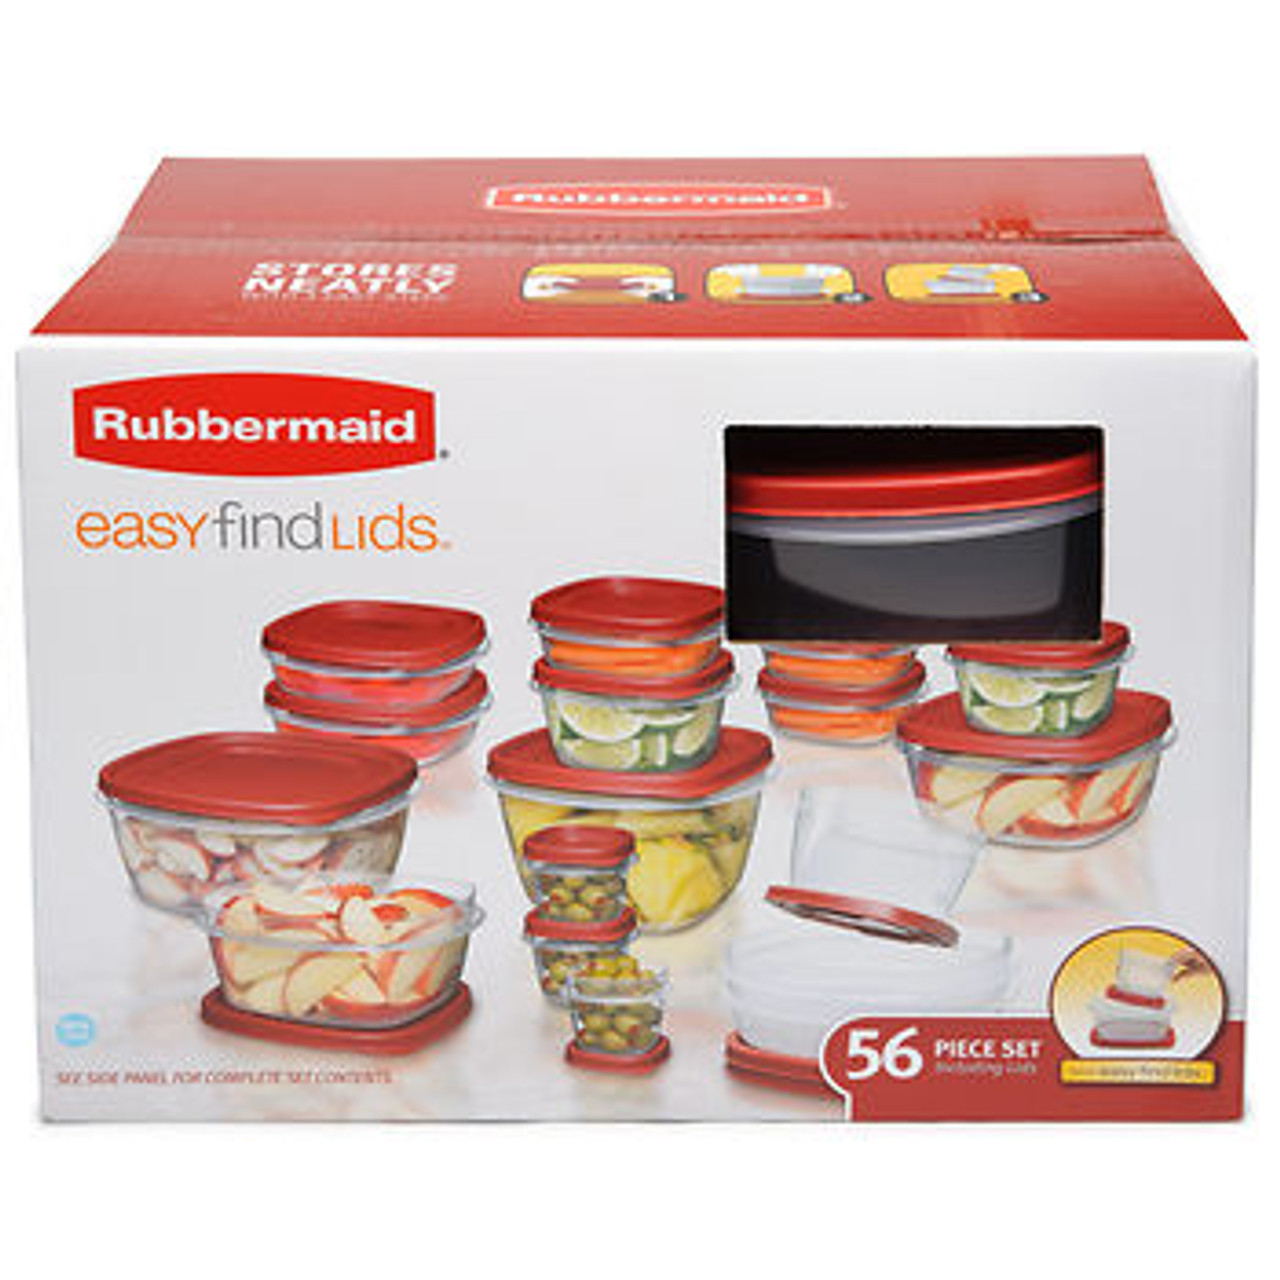 Rubbermaid 56 Pc Food Container Set